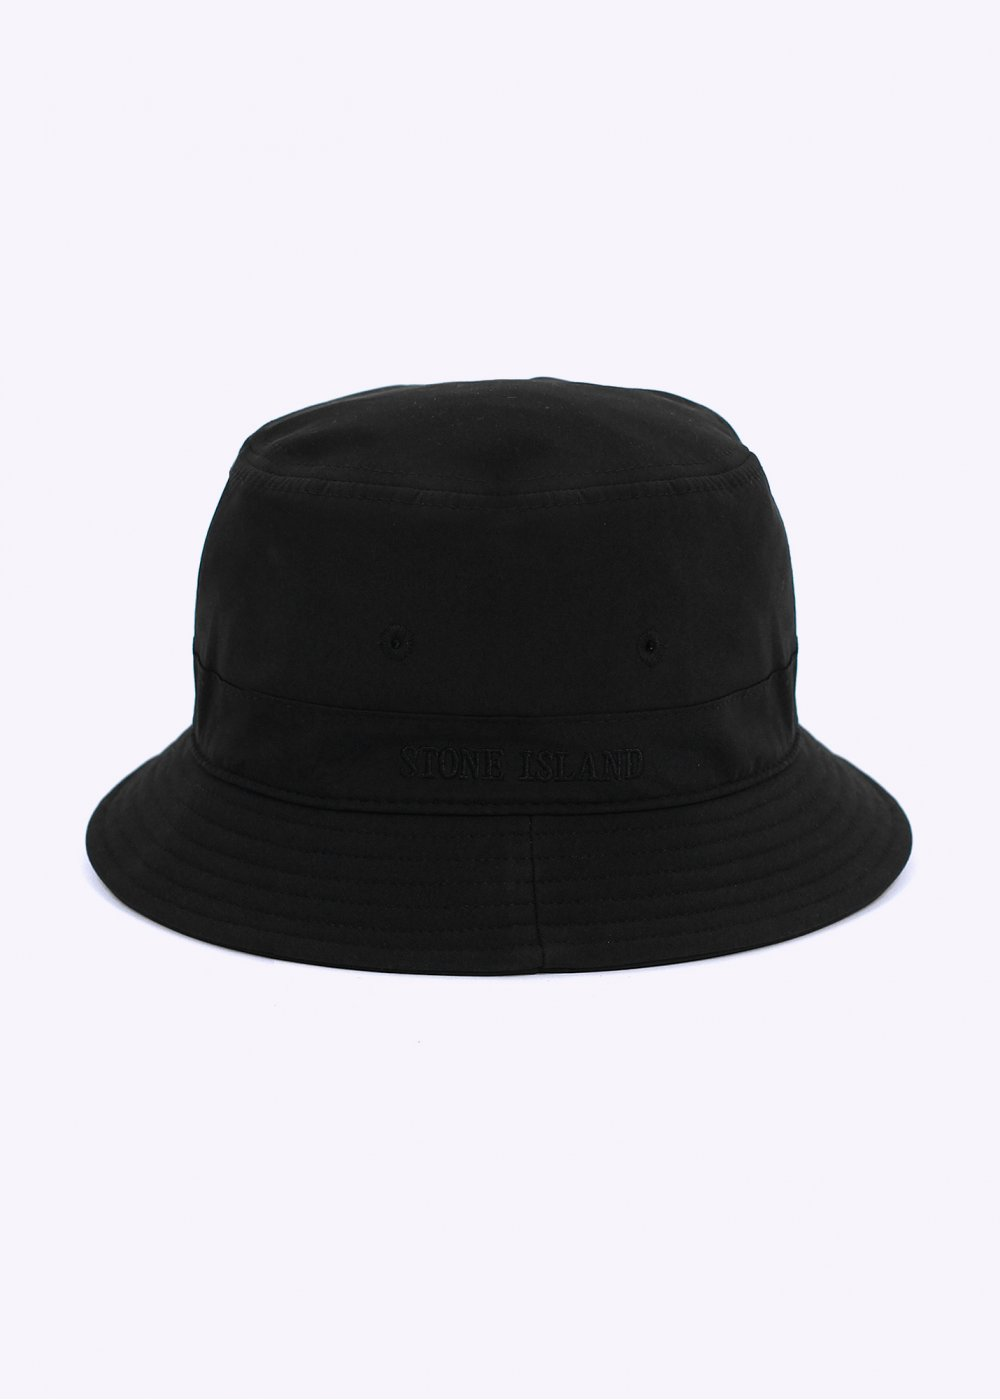 Stone Island Bucket Hat - Black f1d010aac24